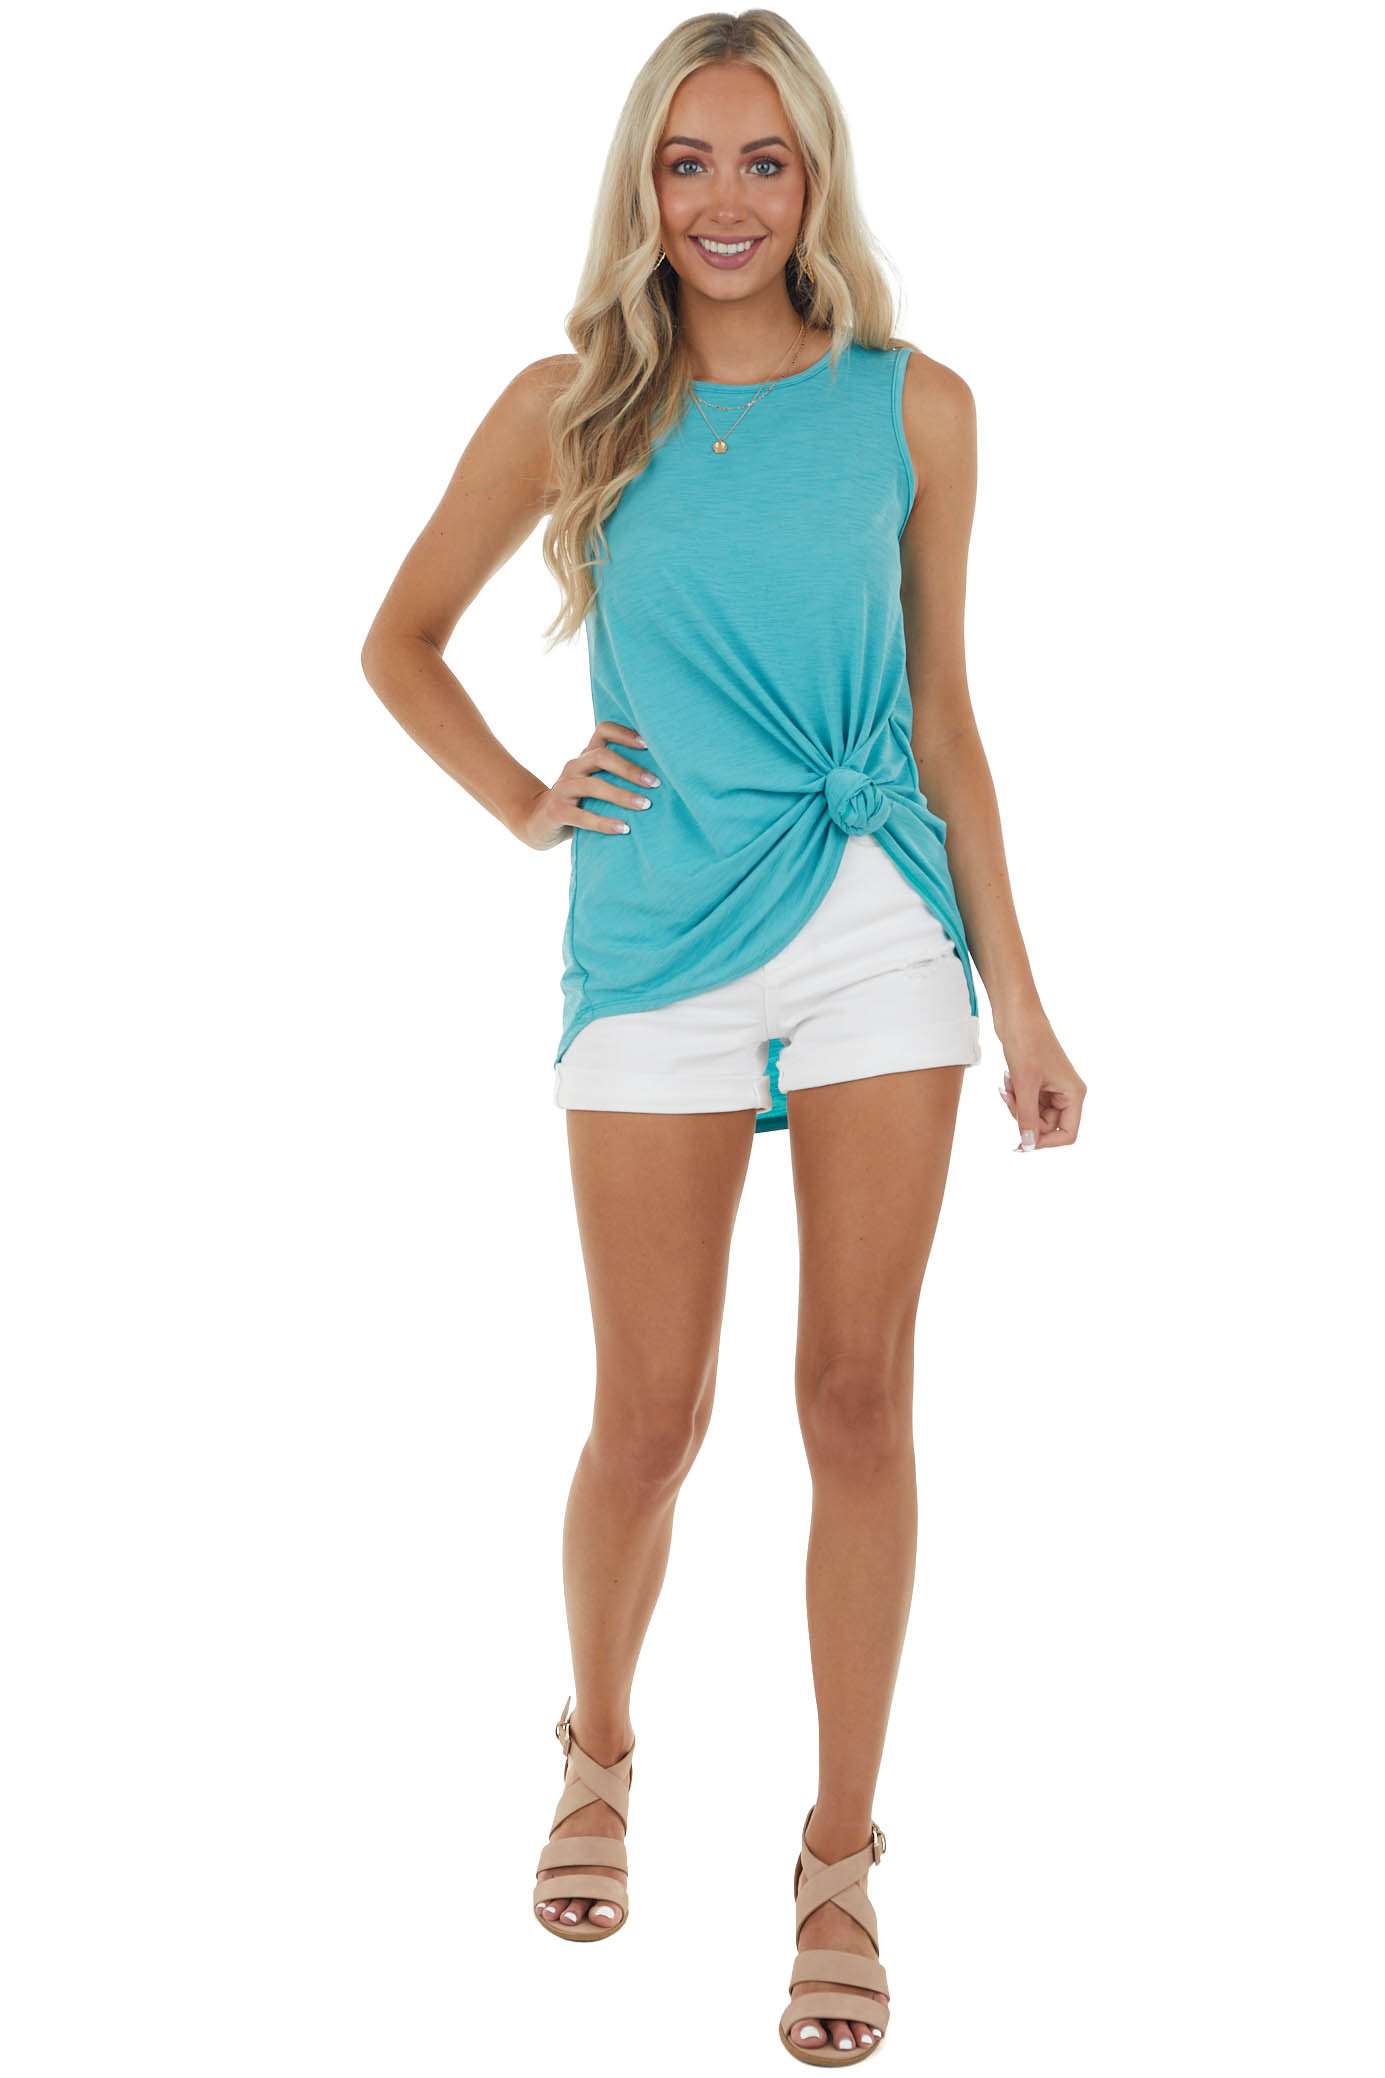 Teal Textured A Line Stretchy Knit Tank Top